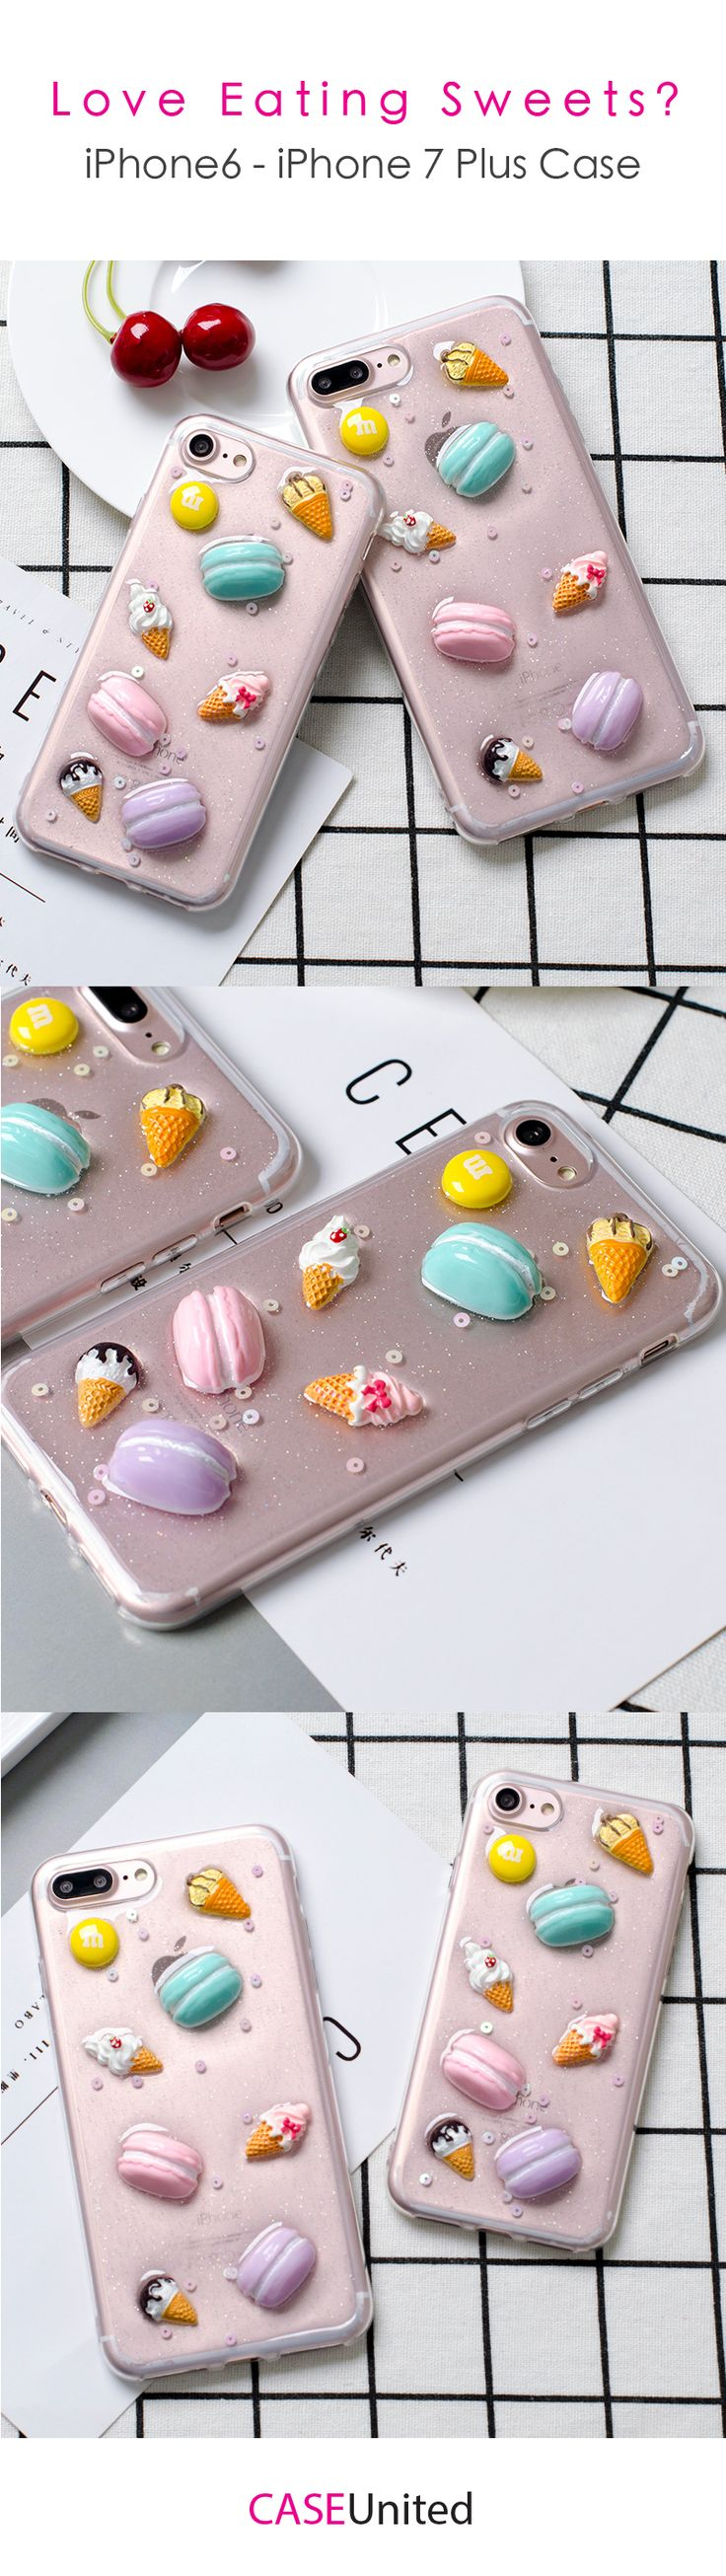 3D iPhone Candy Case For Sweets Lovers ! Protect Your iPhone With Girly Cases!